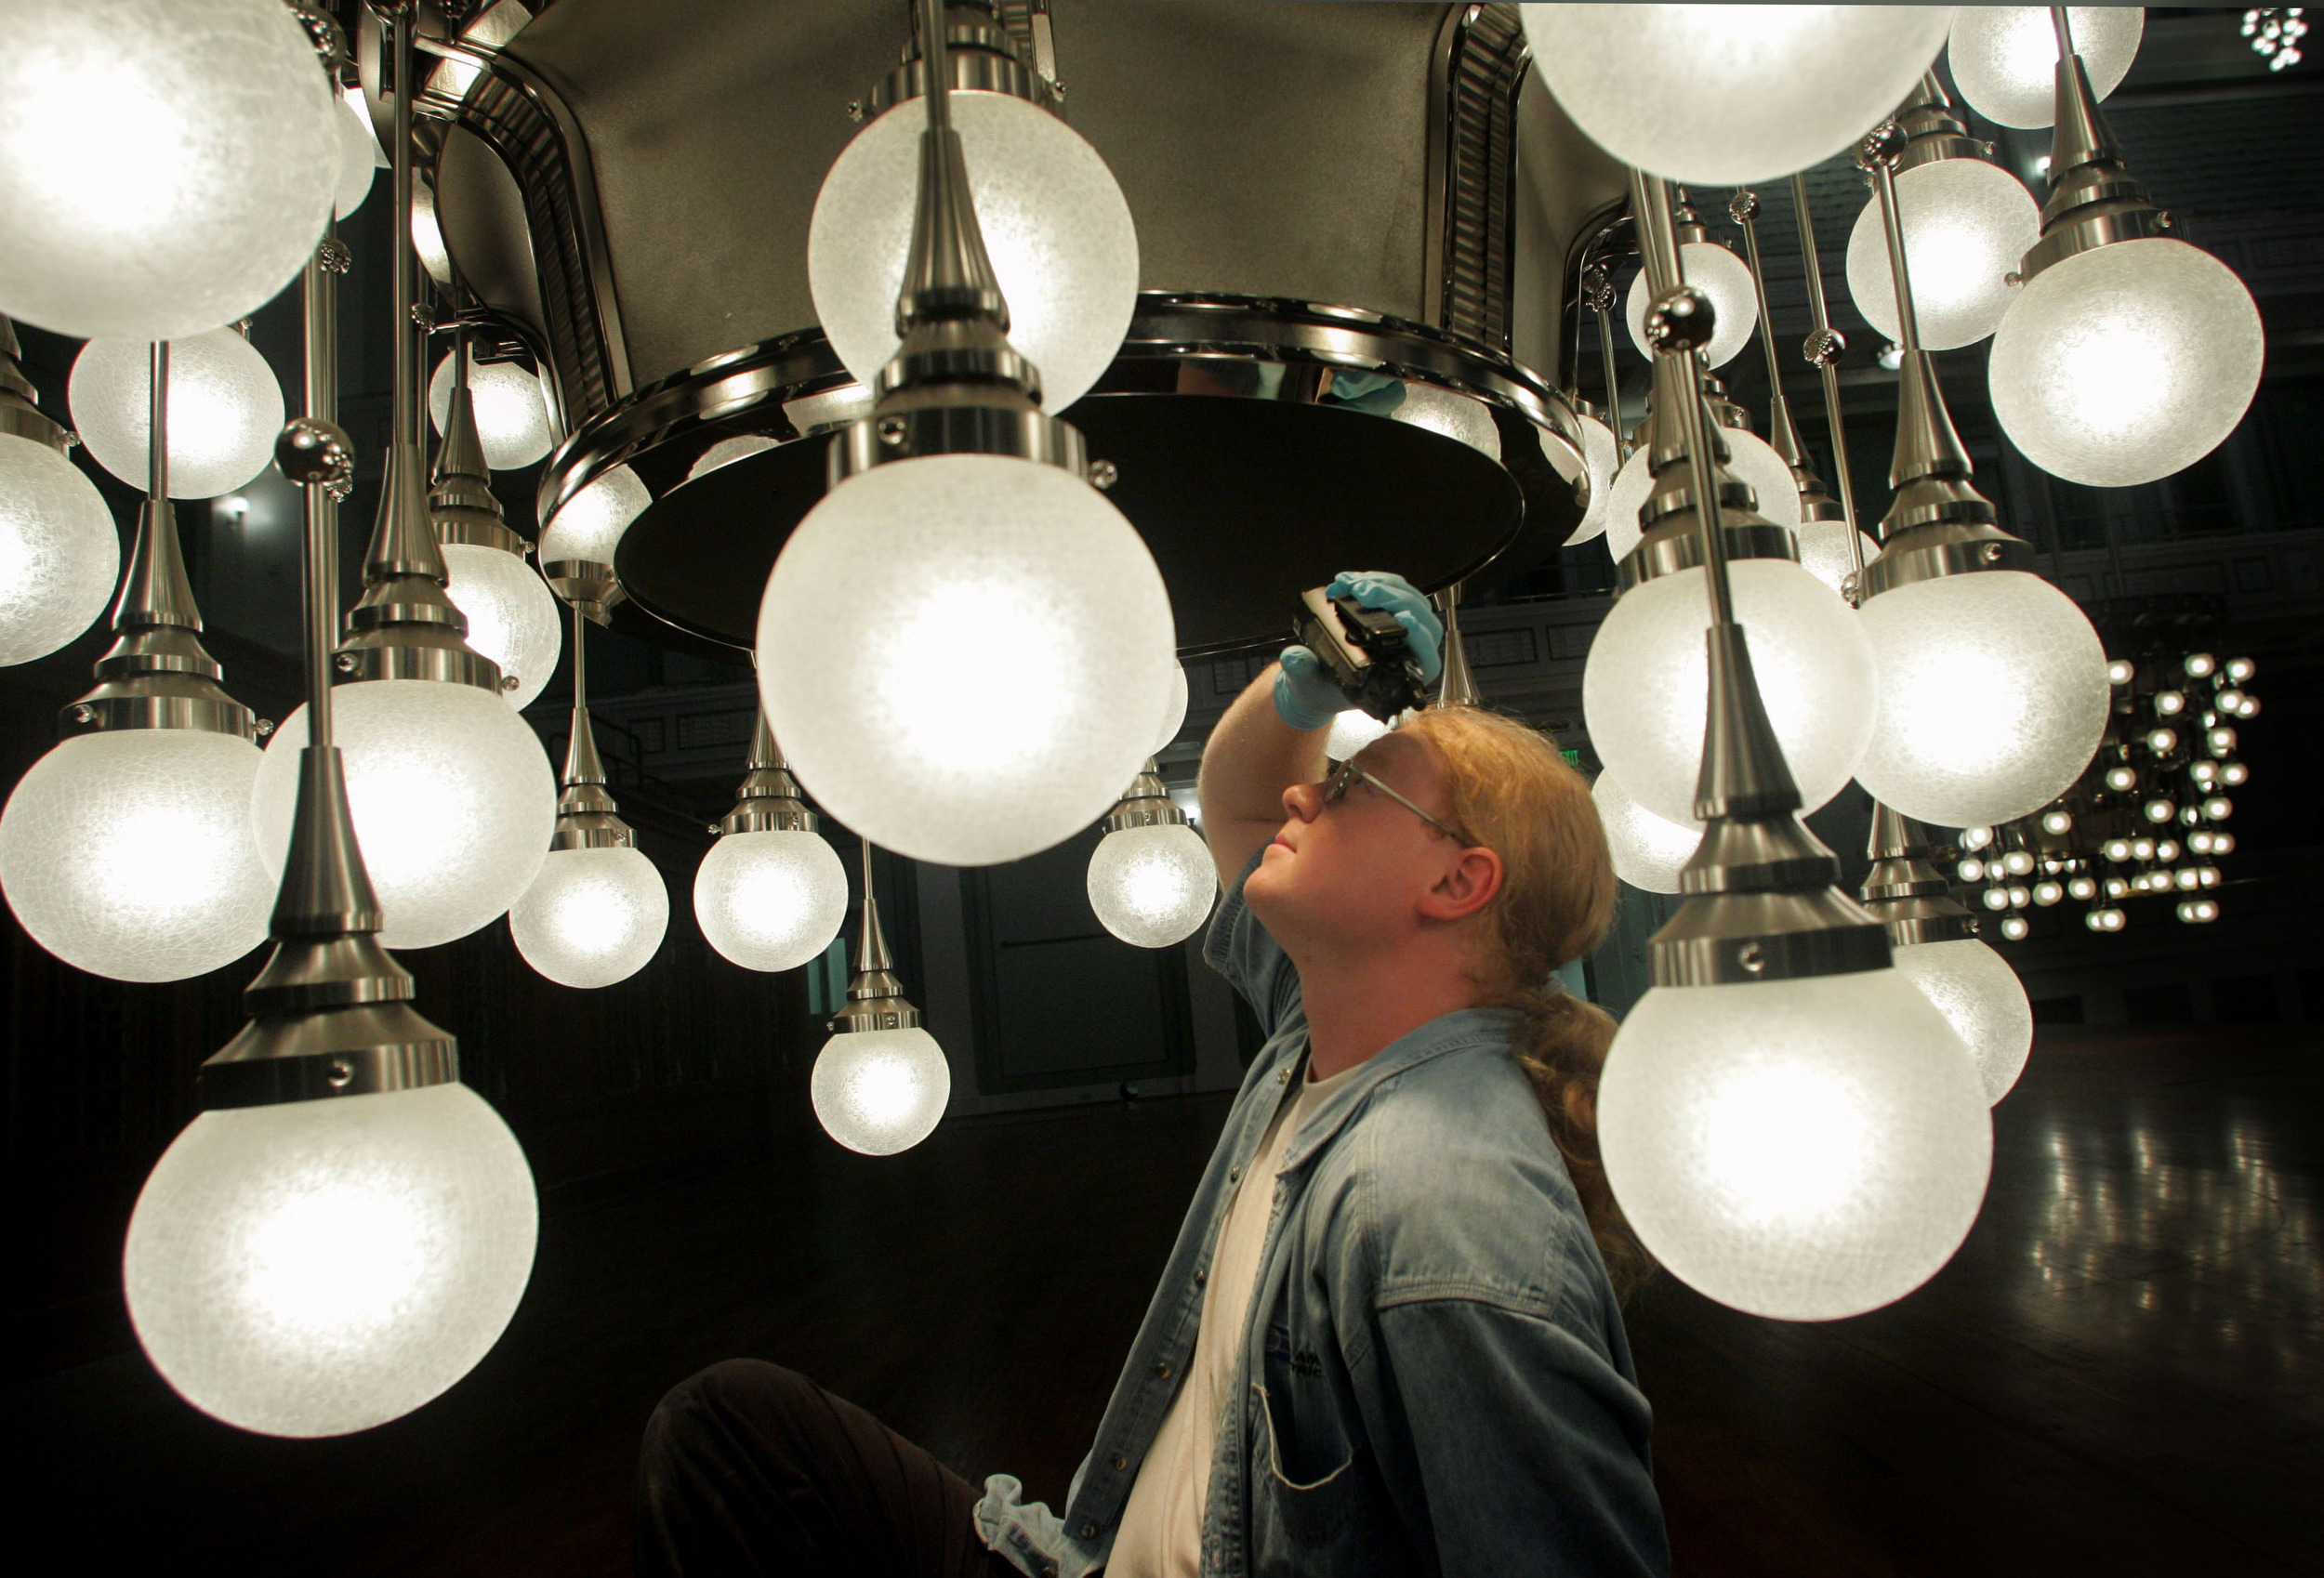 The neoclassical Schermerhorn Symphony Center opened in 2006 and was built over 3 years, employing thousands of specialized contractors and artisans.  Electrician Bobby Hopwood looks into a giant chandelier that hangs over the stage.